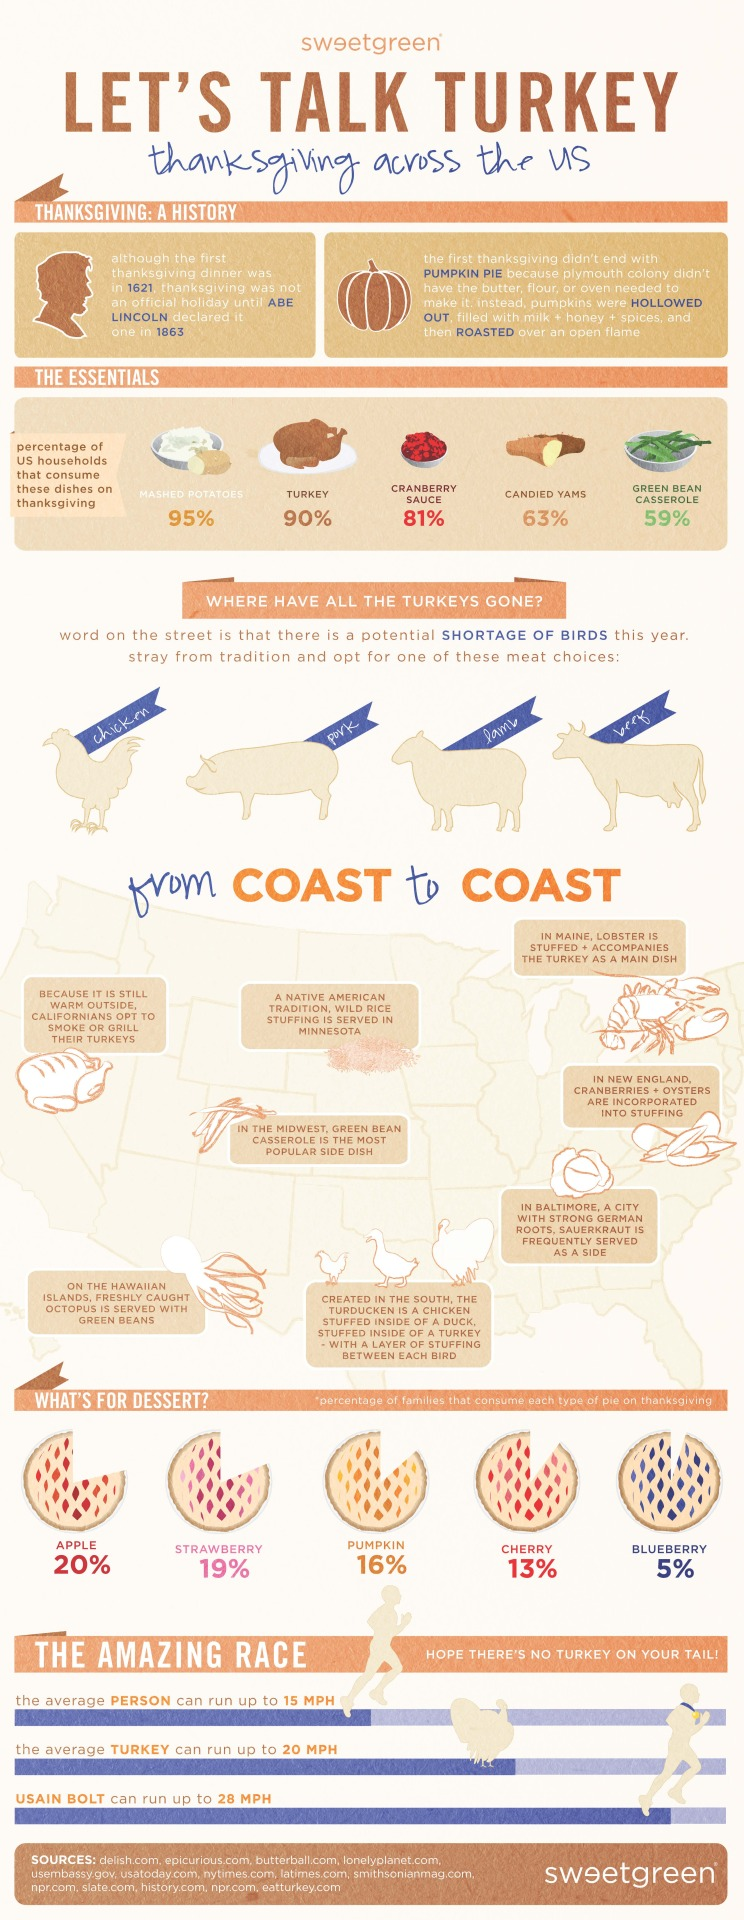 Eating locally isn't a new trend - the first Thanksgiving featured seasonal ingredients grown in Plymouth Colony, and throughout the US, local produce is still incorporated into Thanksgiving meals today.  Since we are all about sourcing and eating local foods, we wanted to celebrate the regional cuisine that is consumed on this holiday. Check out our infographic to learn more about variations on the Thanksgiving meal across the US.